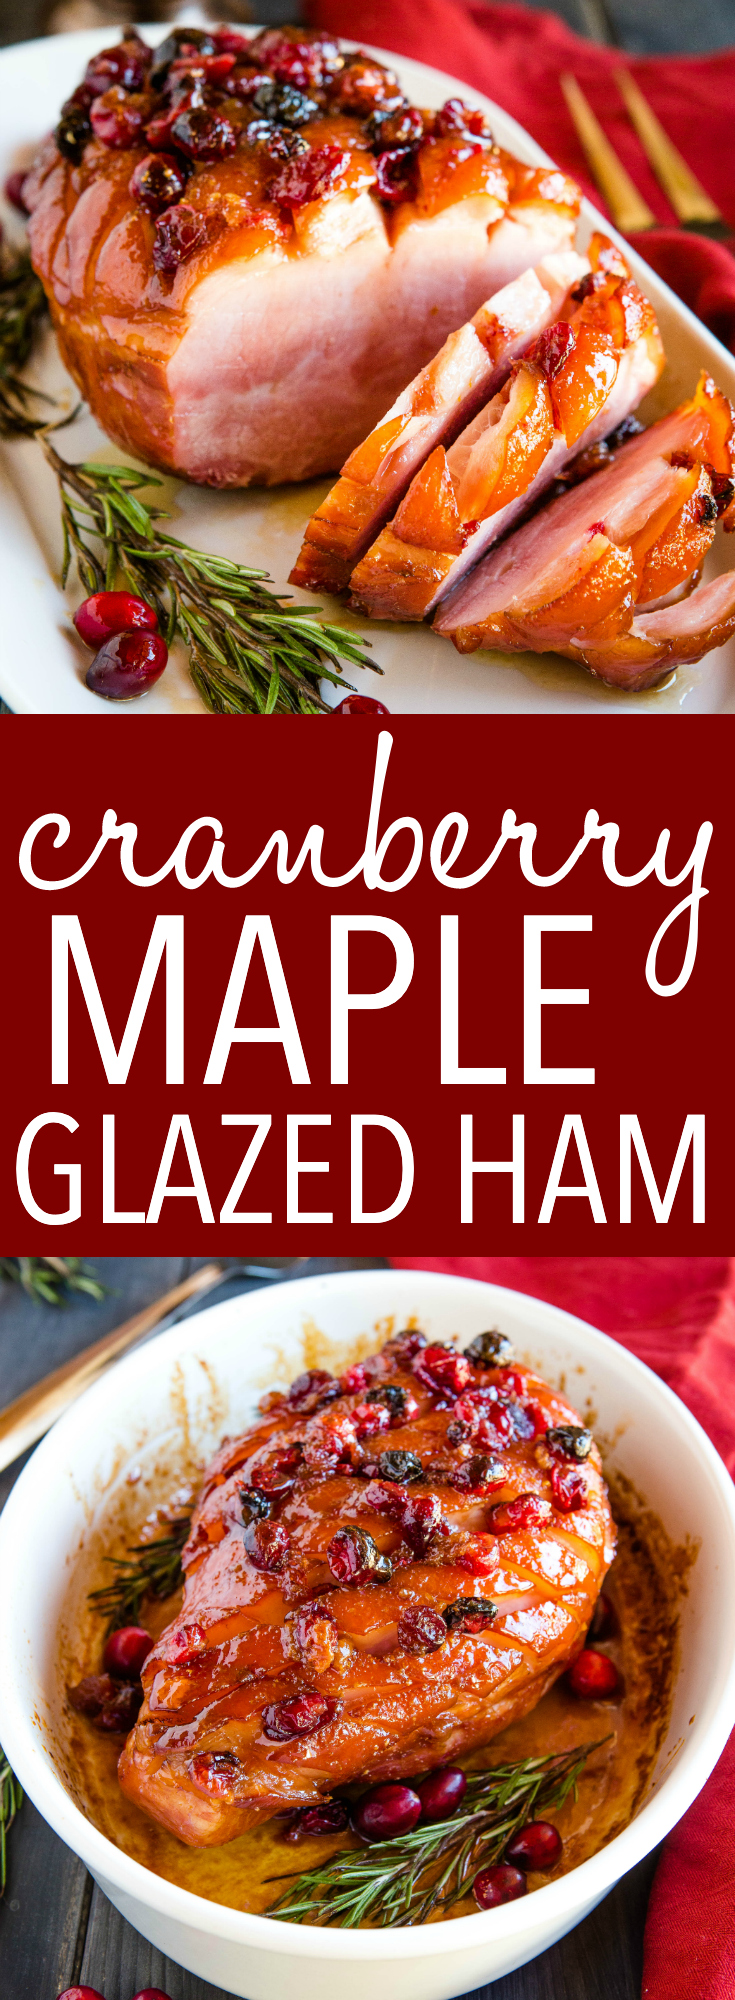 This Easy Cranberry Maple Glazed Ham is the perfect simple main dish for the holidays, and it's perfect for a crowd! An easy 3-ingredient maple glaze and fresh cranberries makes this Christmas Ham so delicious! Recipe from thebusybaker.ca! #ham #christmas #holidayham #holidays #cranberries #maple #mapleglazedham #easyrecipe #simple #homemade #recipe #roasting #christmasdinner #dinner #potluck via @busybakerblog